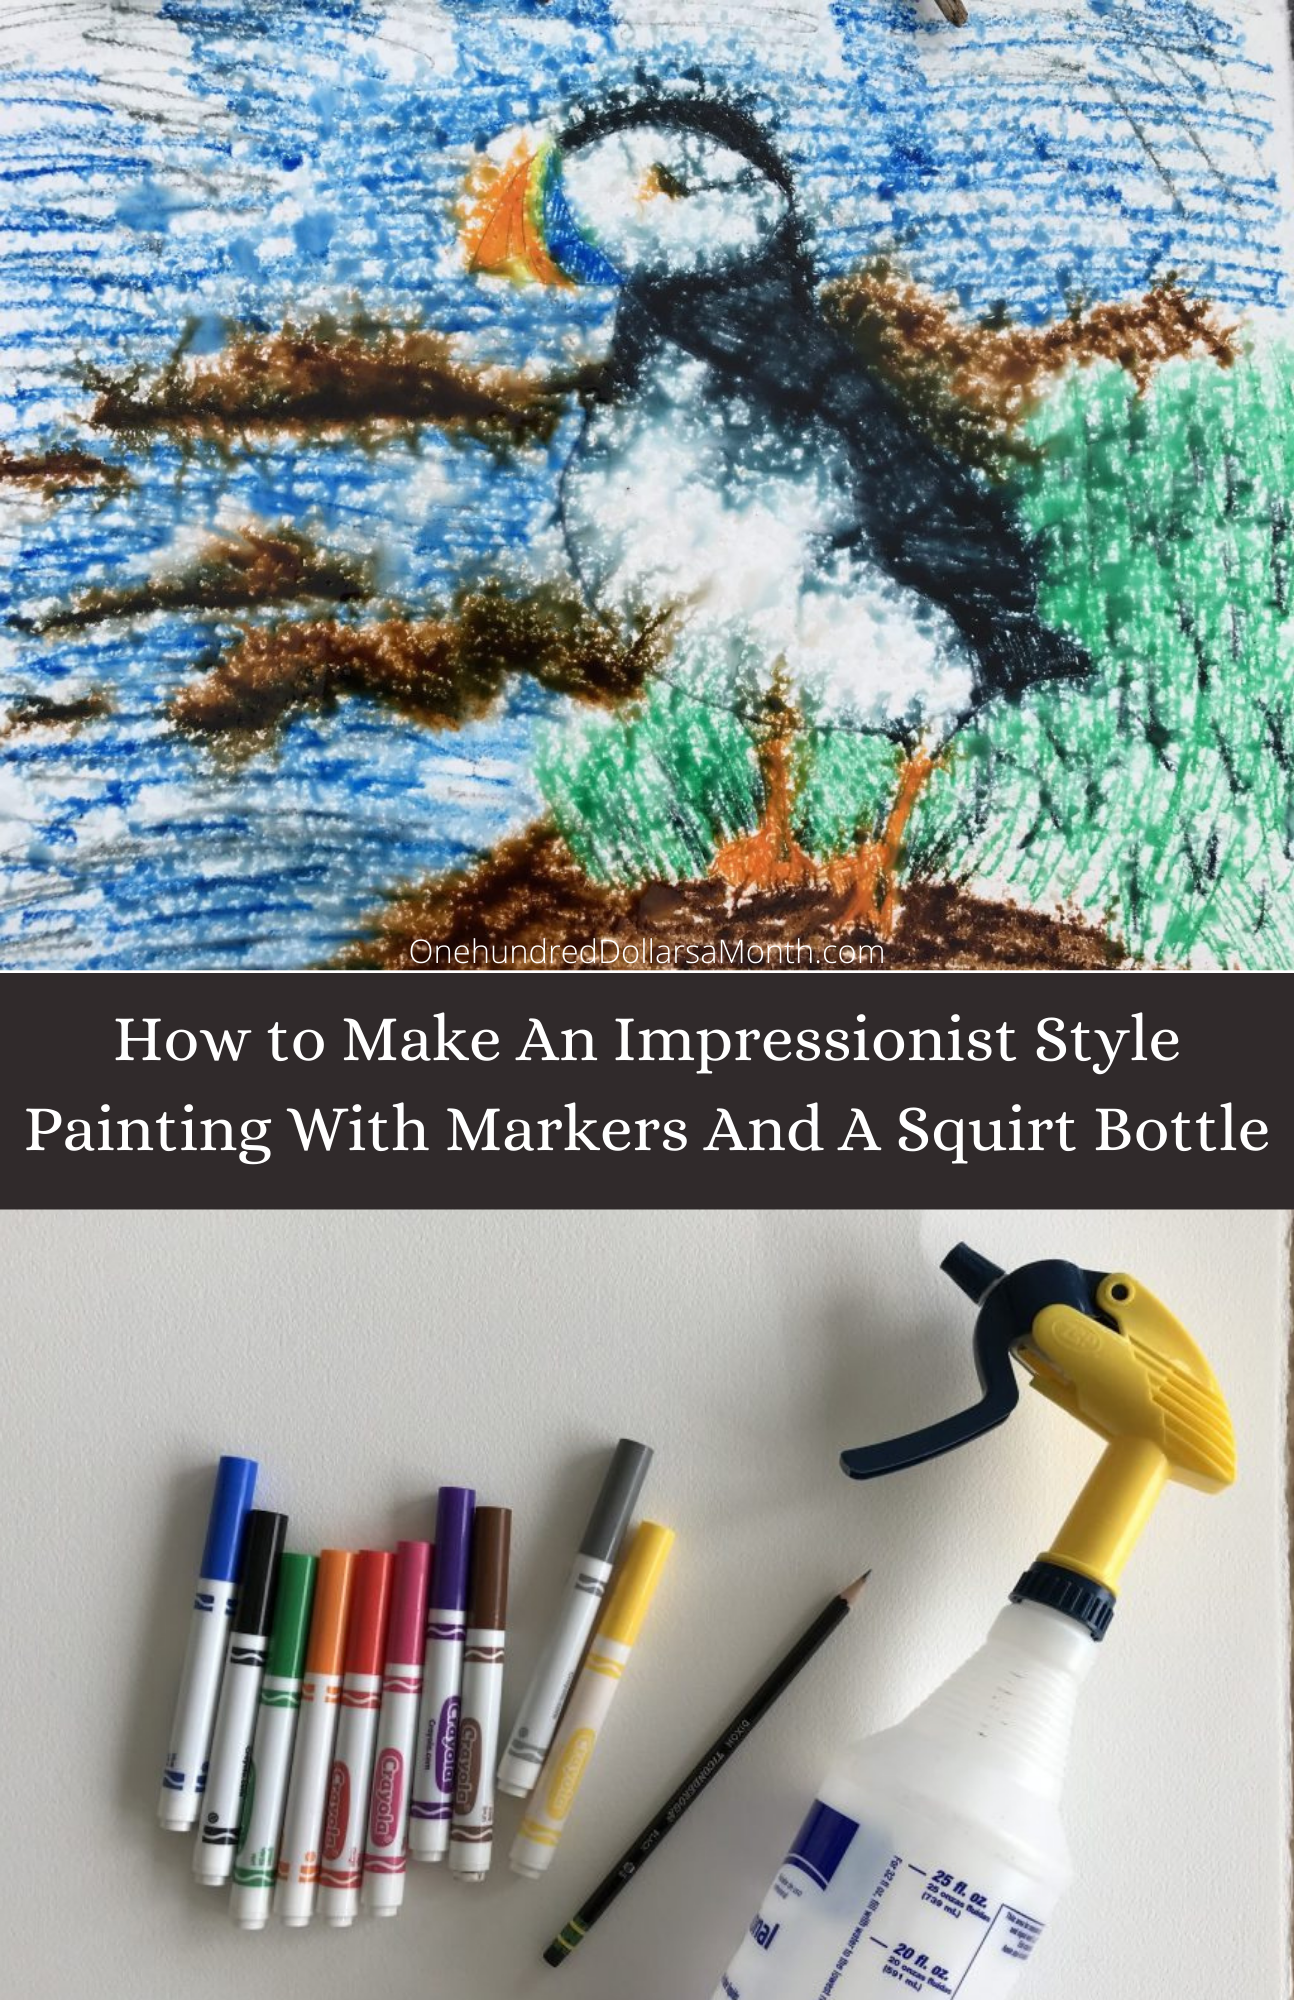 How to Make An Impressionist Style Painting With Markers And A Squirt Bottle